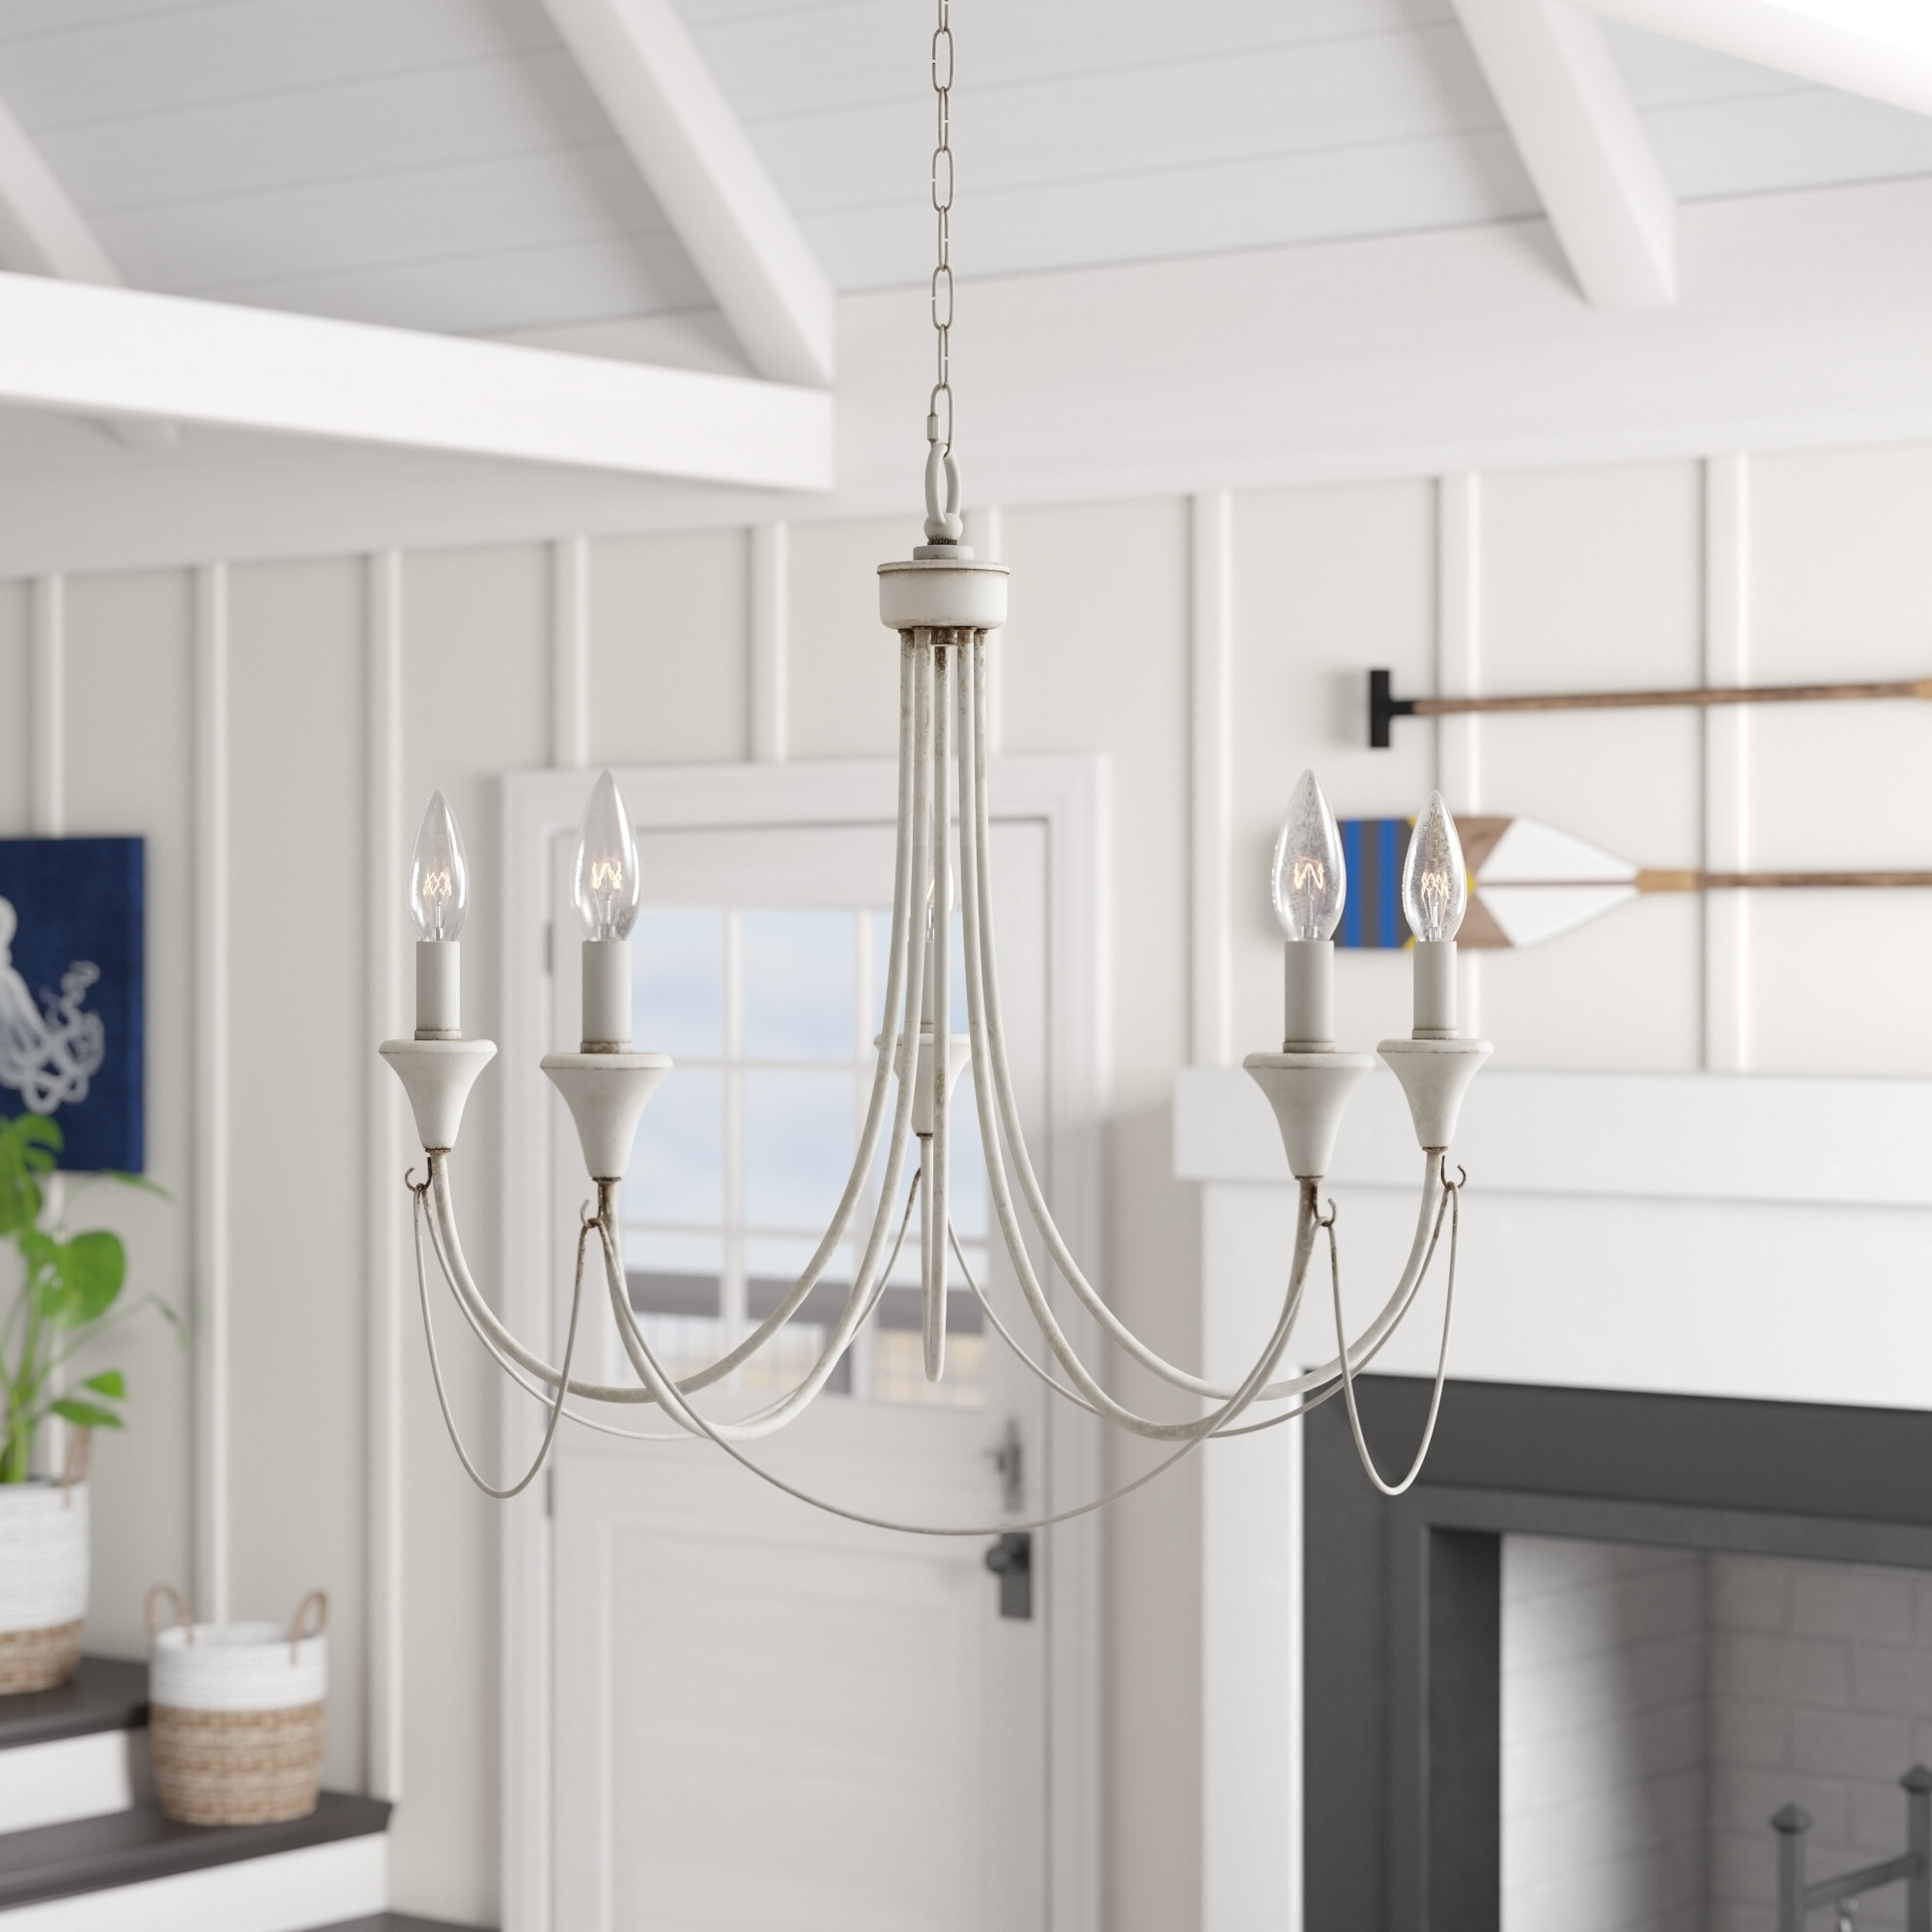 Corneau 5 Light Chandeliers Within Current Breakwater Bay Walczak 5 Light Chandelier (View 12 of 20)